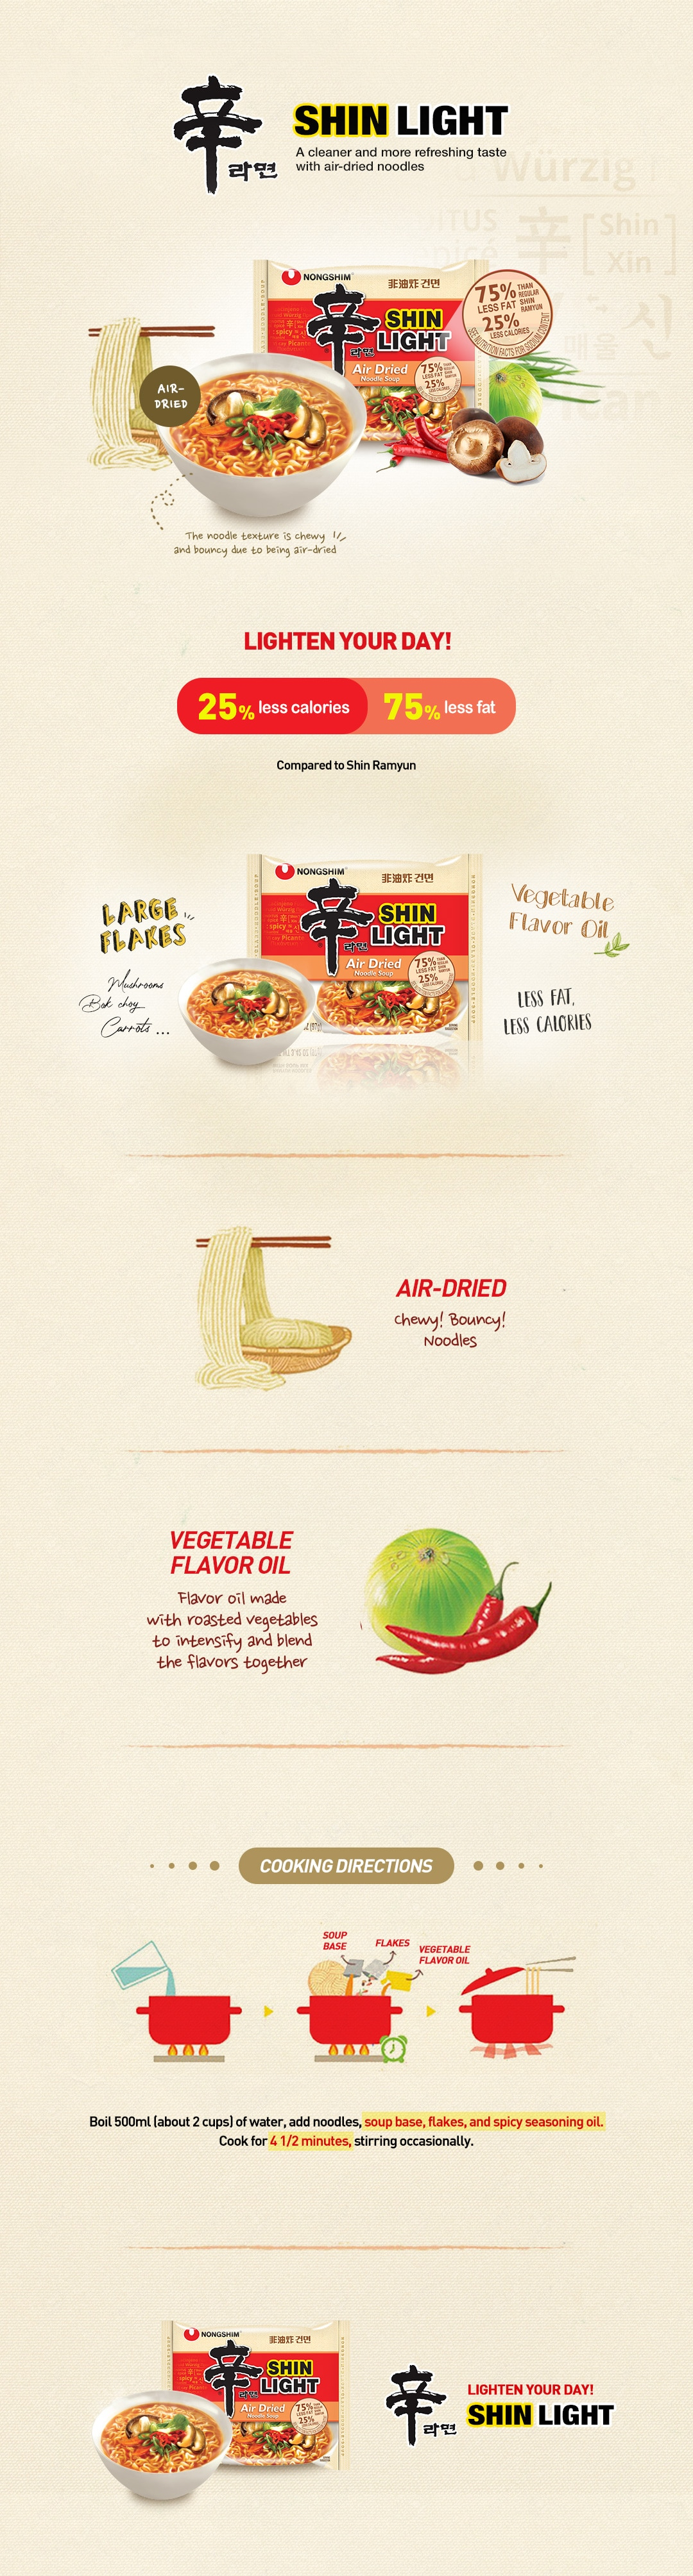 Image for Shin Light Air Dried Noodles Product Details